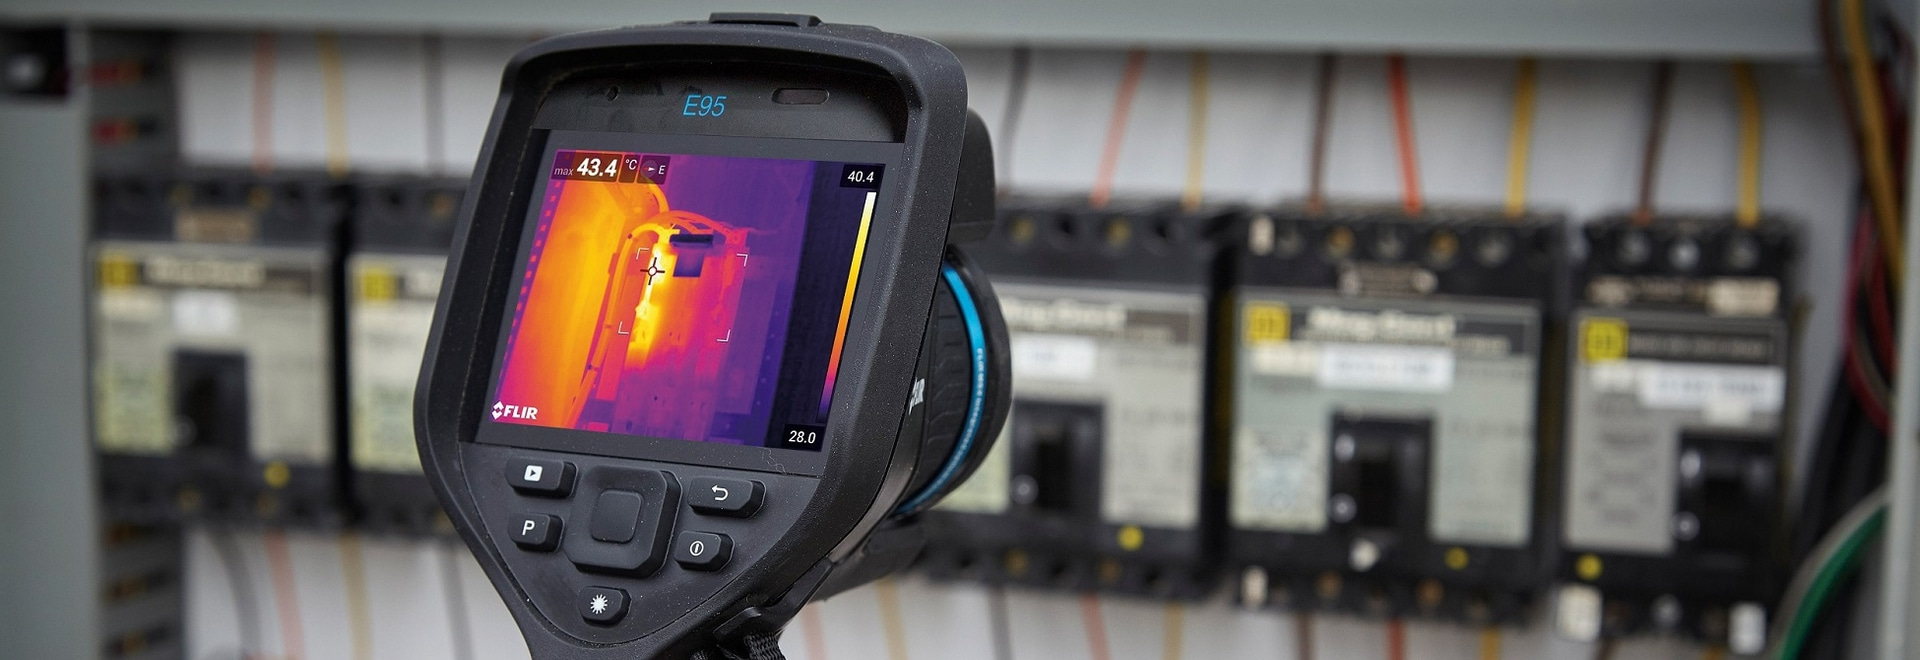 FLIR E95 thermal imaging camera - electrical inspection